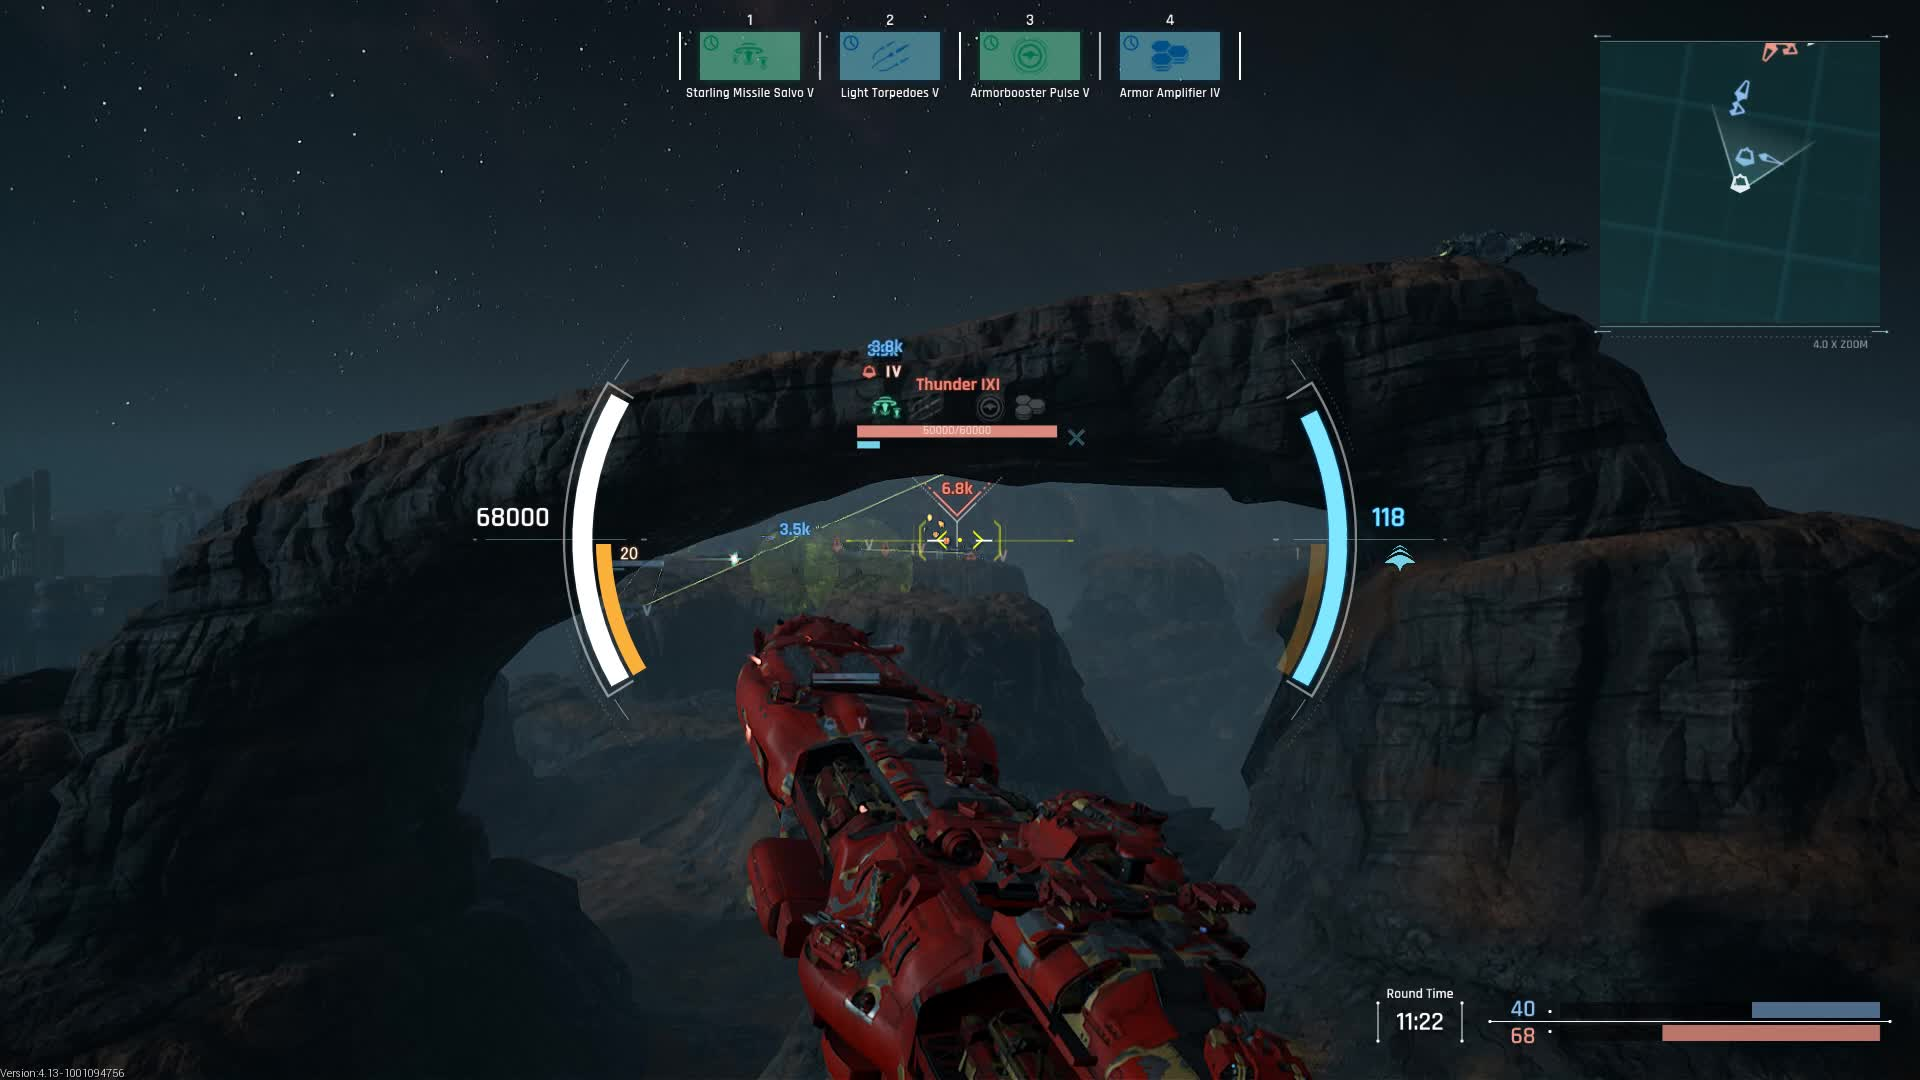 Aww, Dreadnought, HI, High Five, Holdmyredbull, Lol, OMG, PC, PC Gaming, PVP, Popular, Shrug, Space, Trending, WTF, Willis, Dreadnought - Trebuchet: The Great Equalizer GIFs